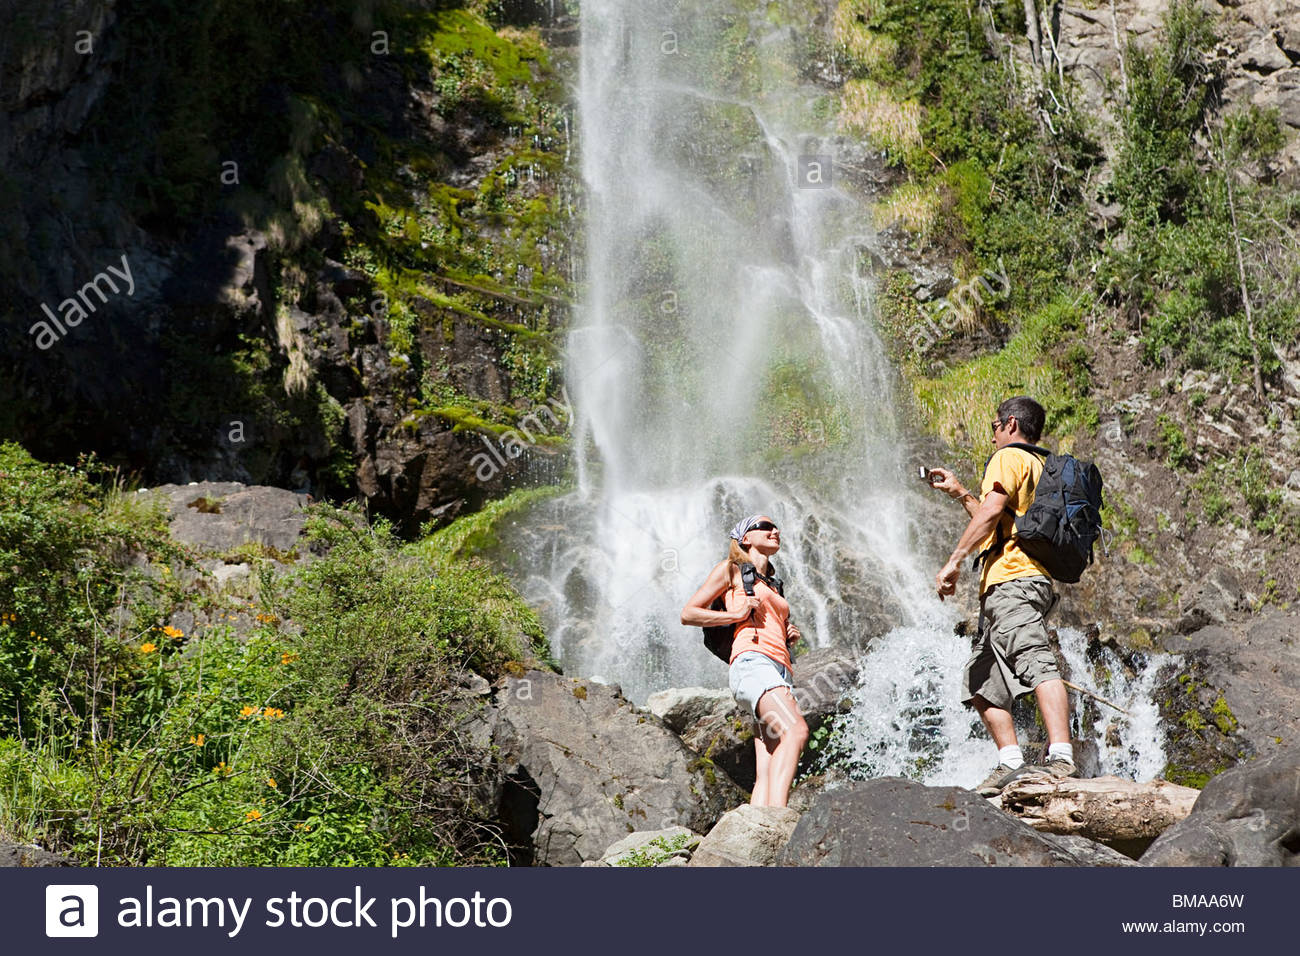 Couple taking pictures by waterfall - Stock Image